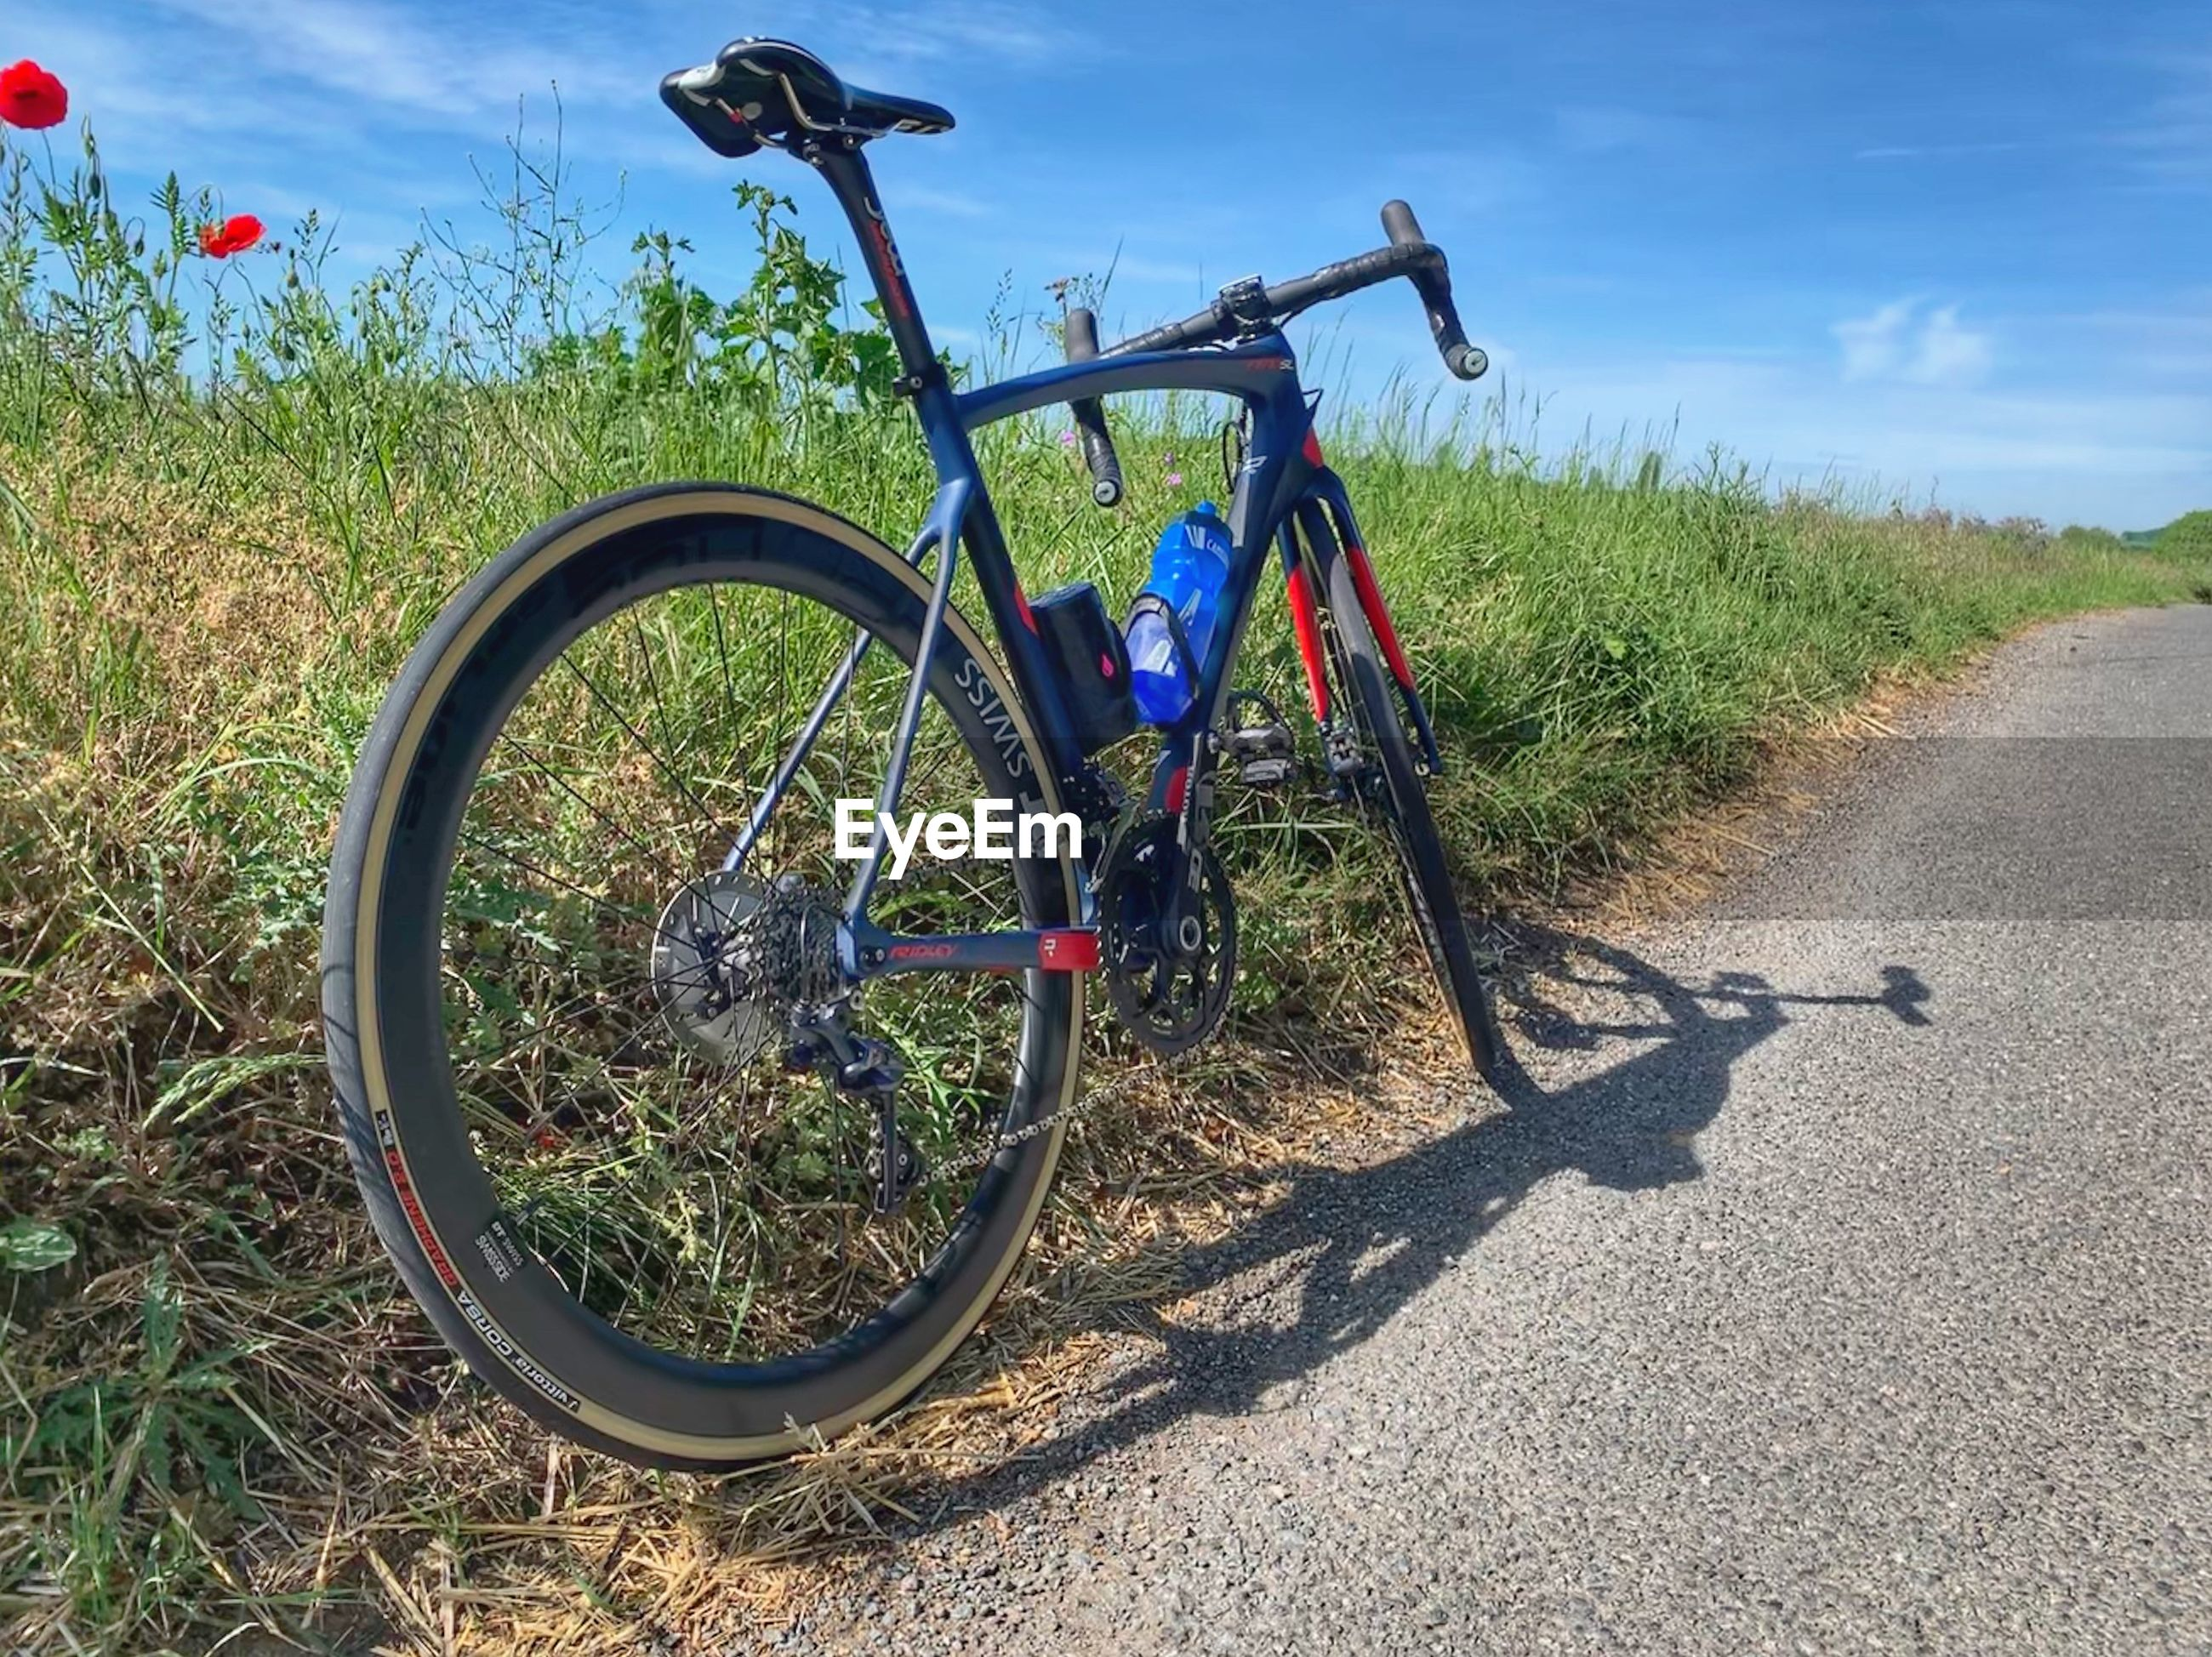 transportation, bicycle, land vehicle, mode of transportation, nature, plant, road, day, land, stationary, field, sunlight, grass, shadow, no people, sky, wheel, parking, outdoors, dirt, tire